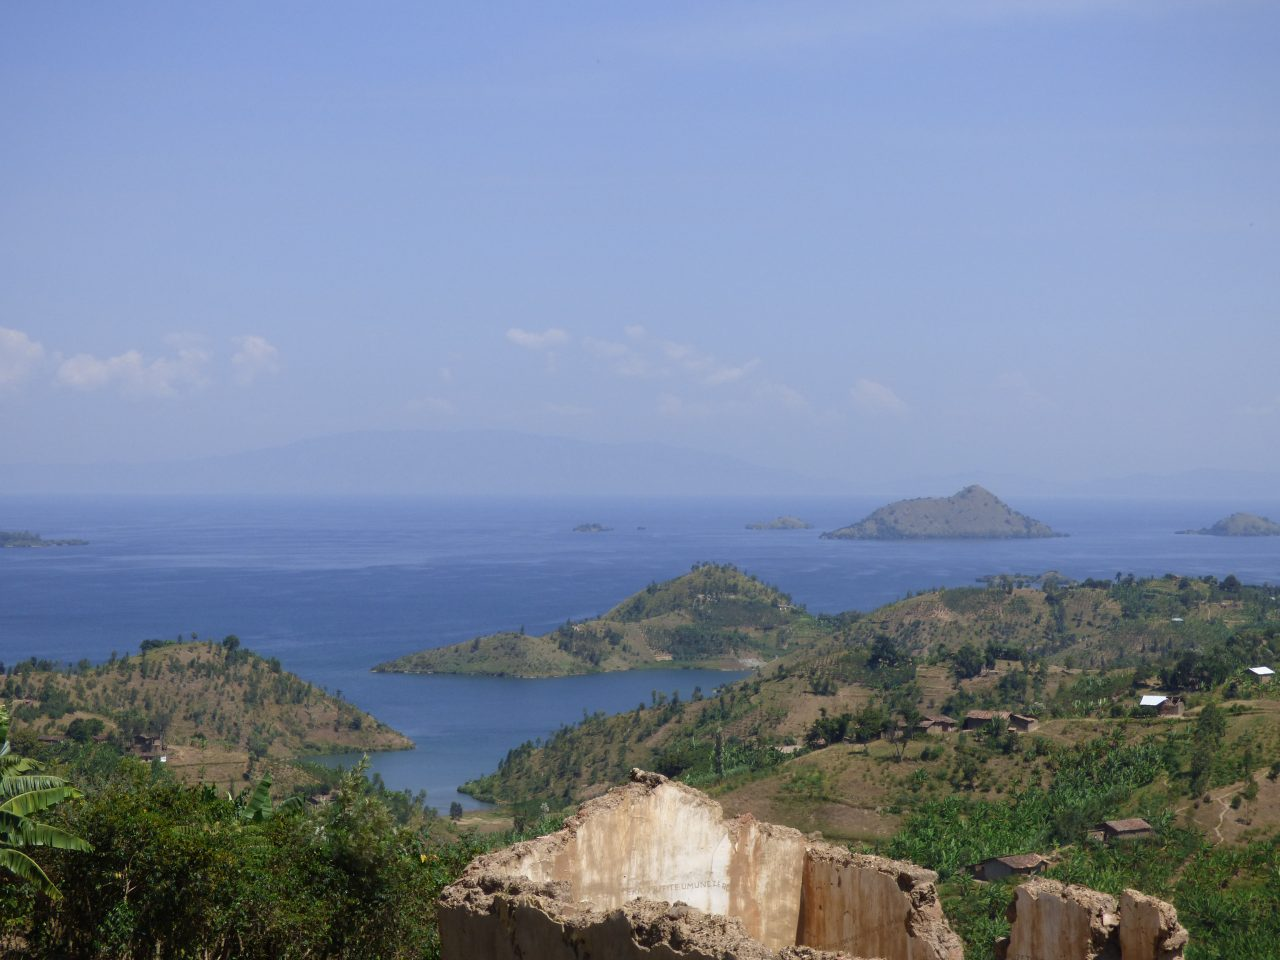 Mountainous and water view from Ejo Heza